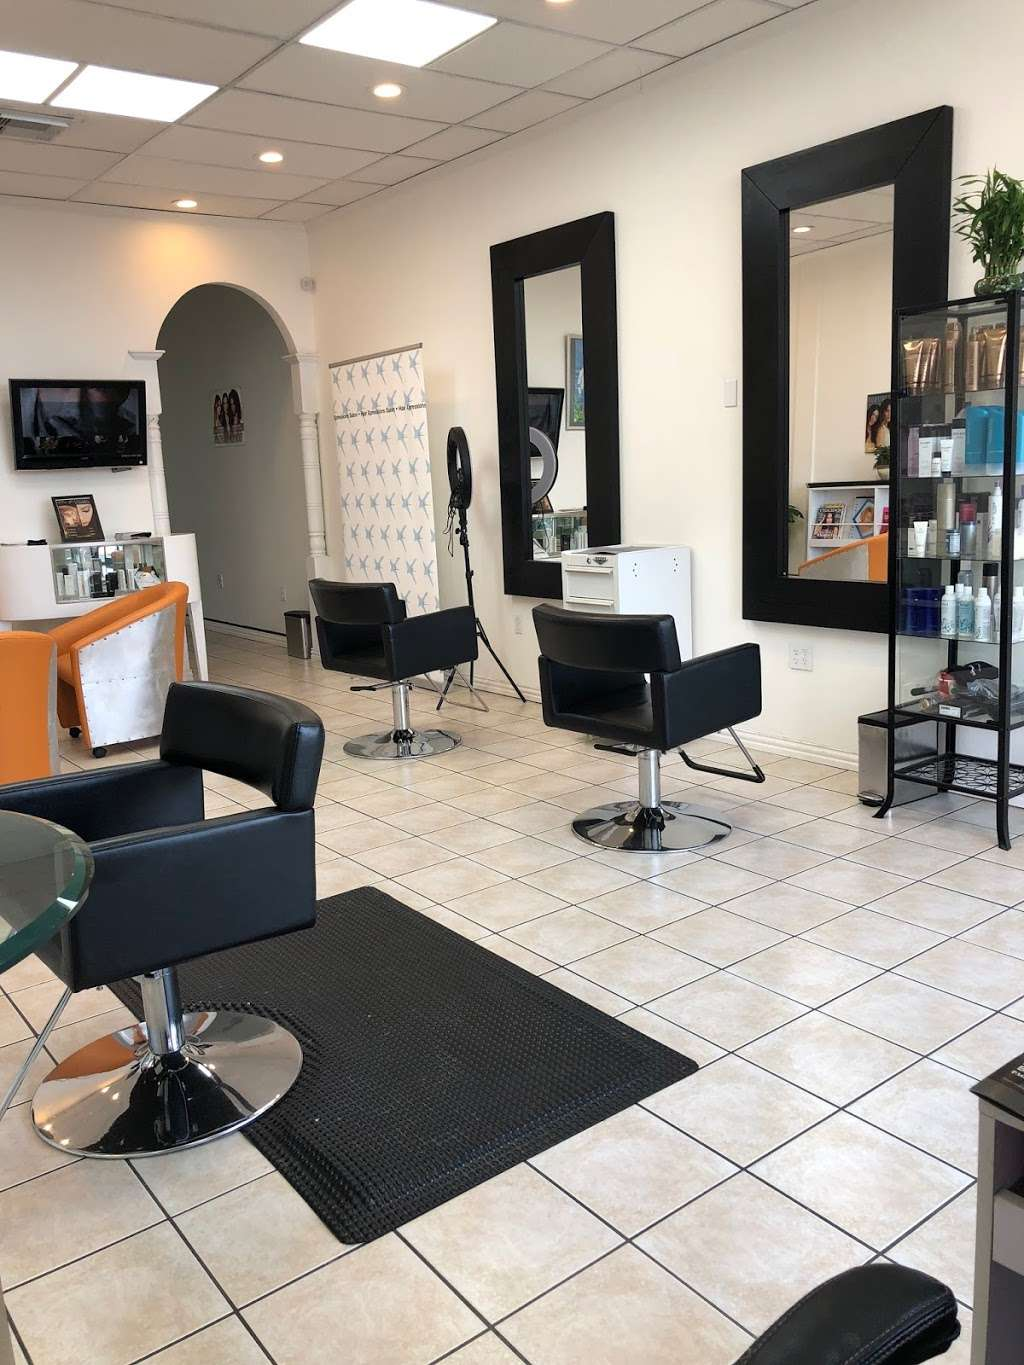 Hair Xpressions Salon - hair care  | Photo 1 of 10 | Address: 8949 Westheimer Rd, Houston, TX 77063, USA | Phone: (713) 550-9266